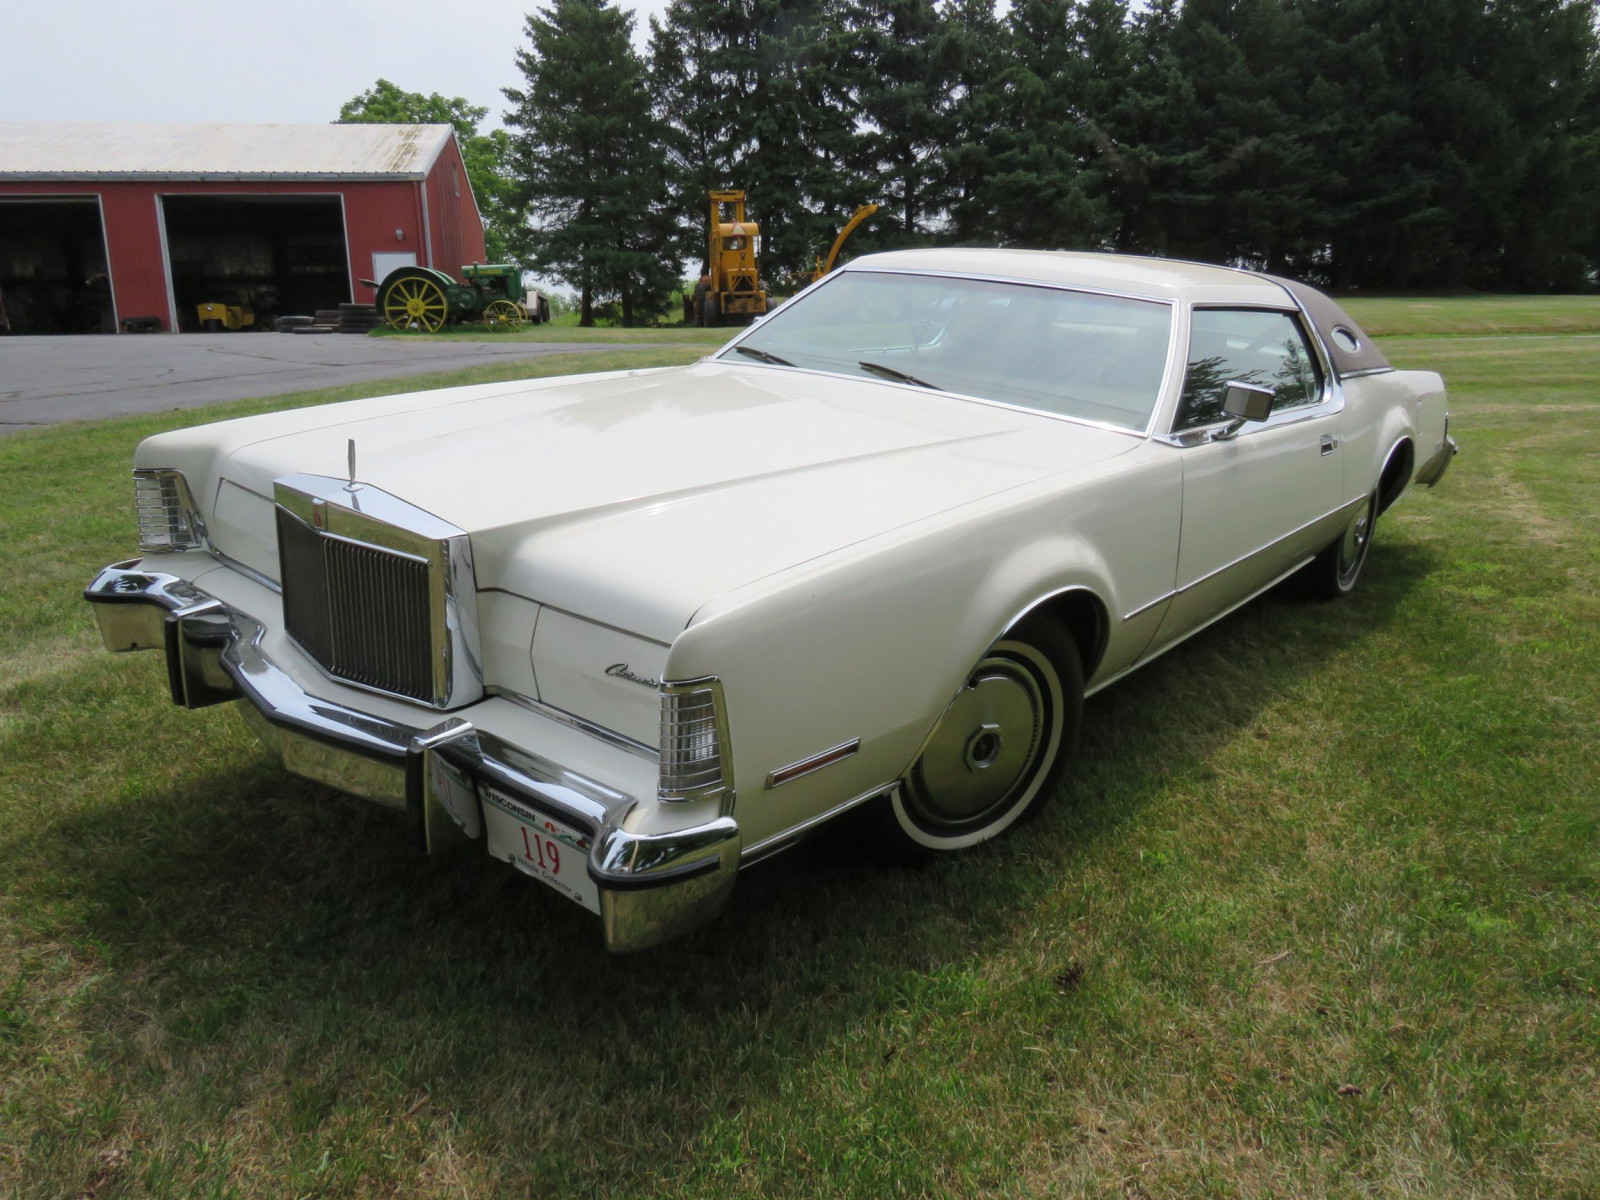 1976 Lincoln Continental Mark VI Coupe - Image 1